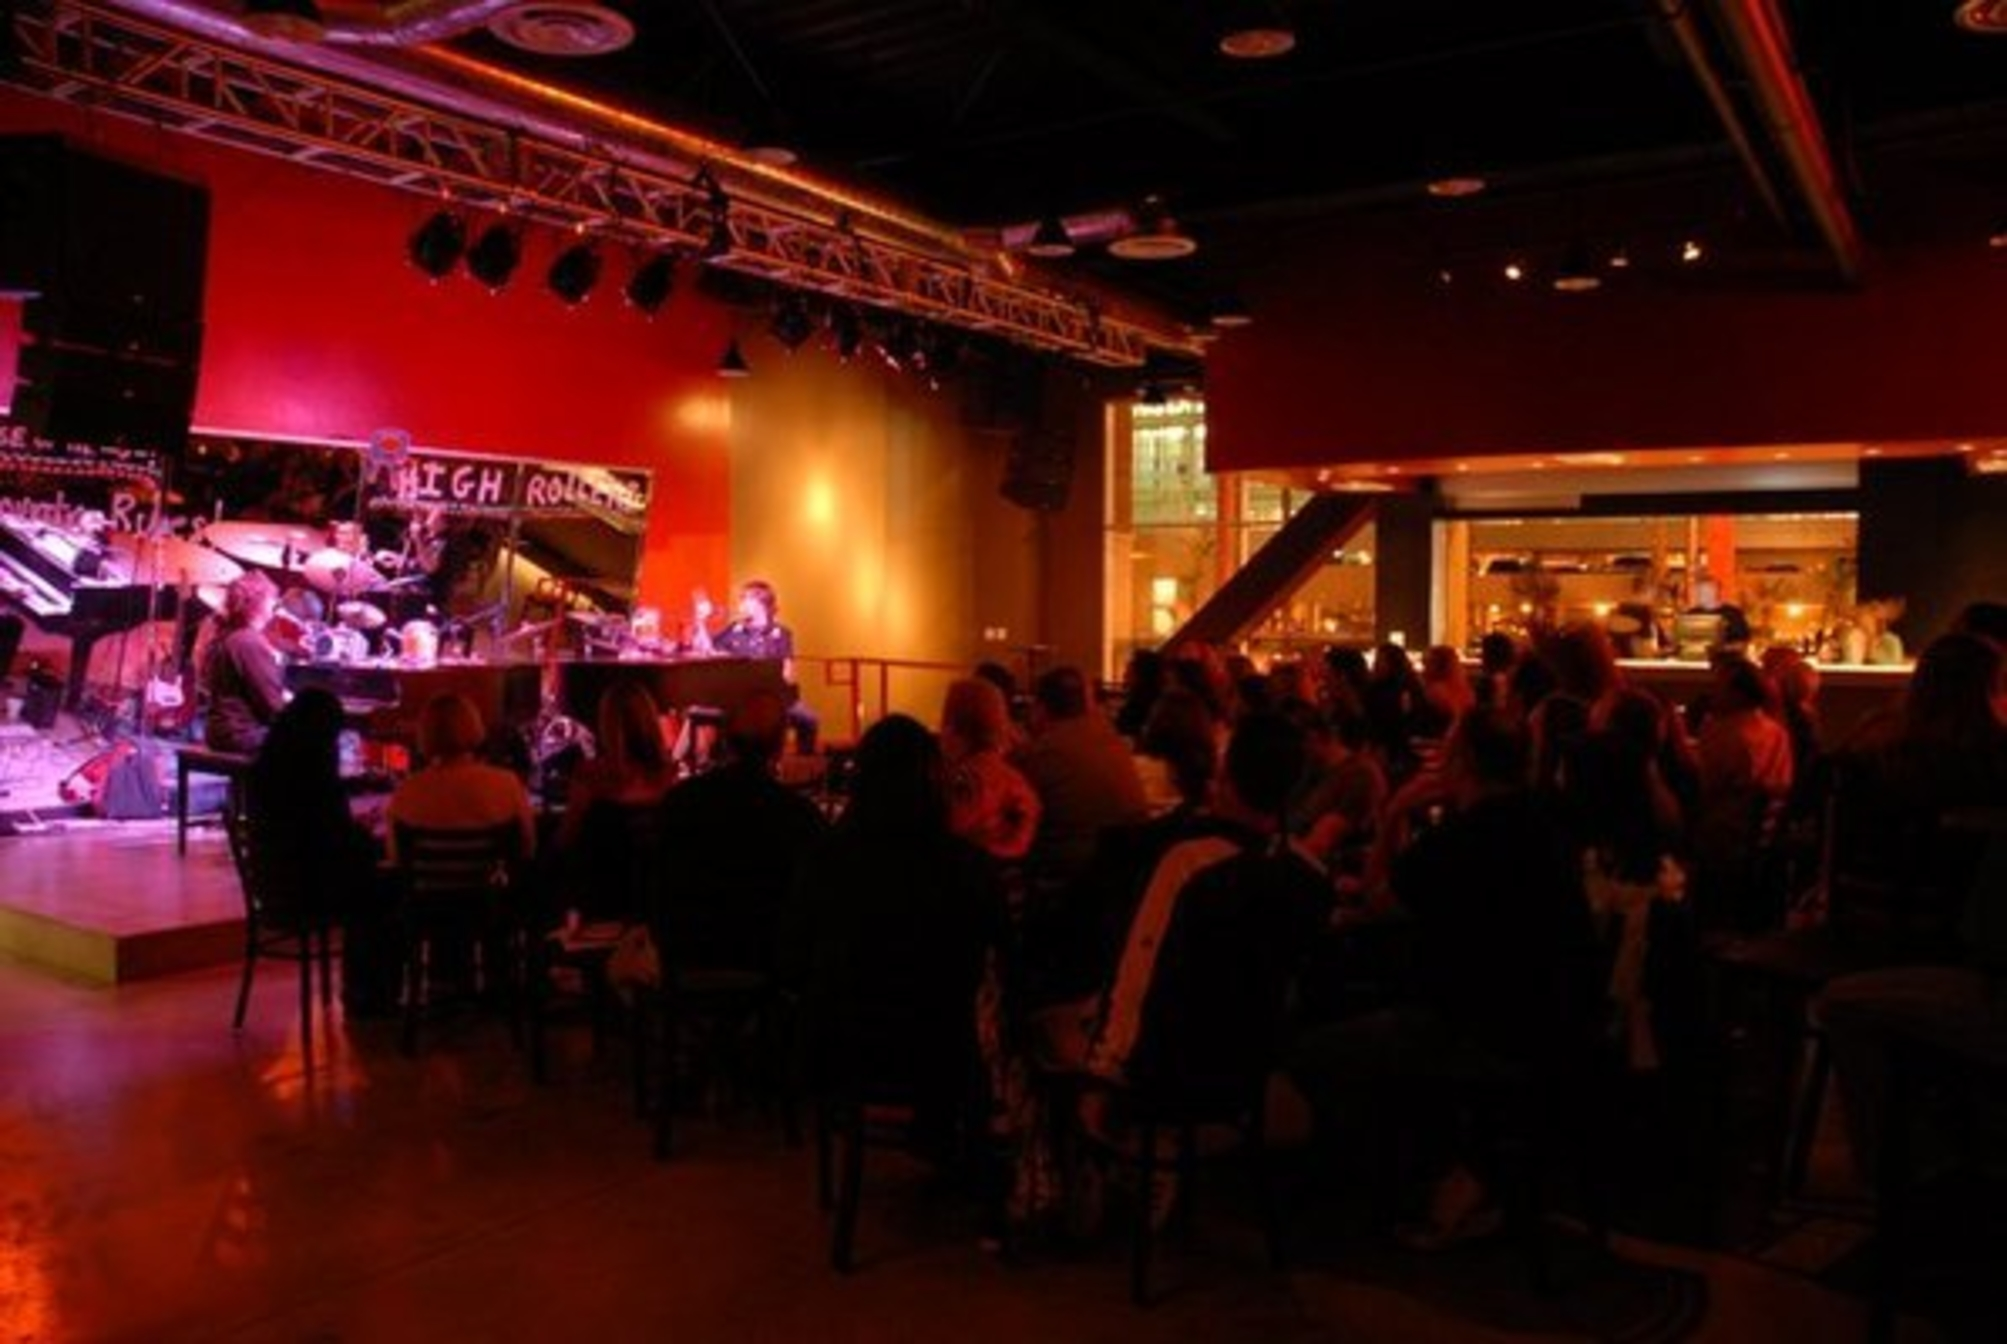 Sgt. Peppers Dueling Pianos